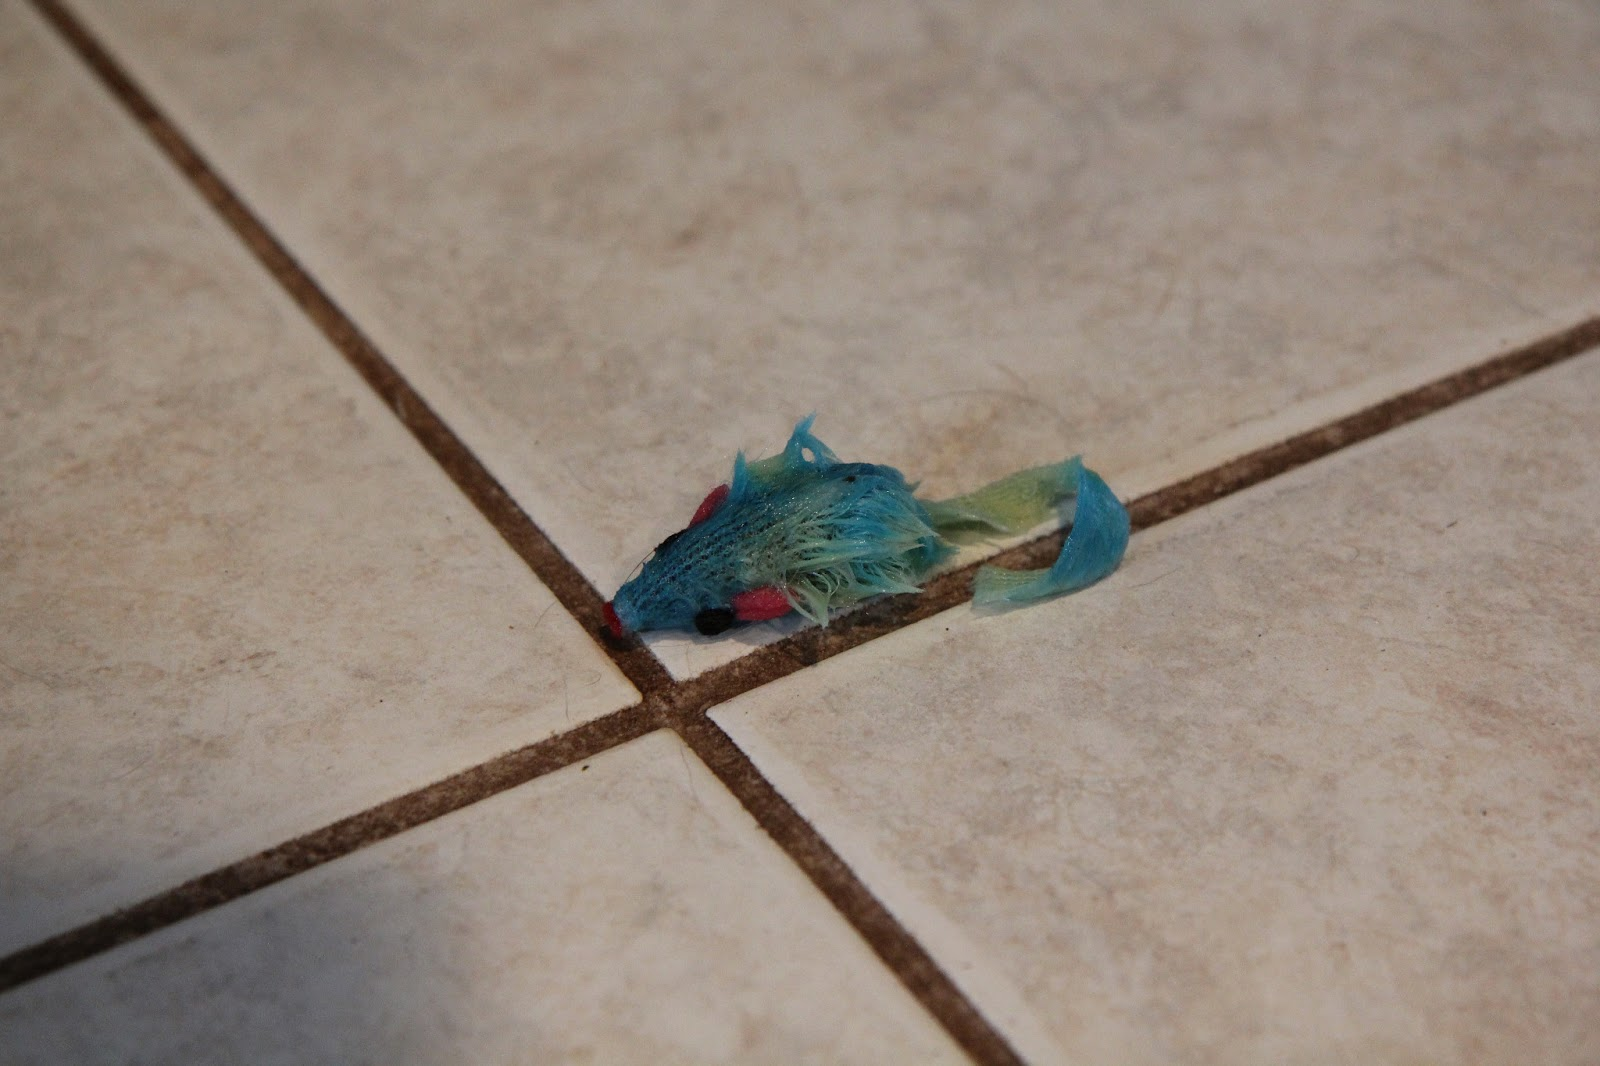 A wet and ruined cat toy on the floor